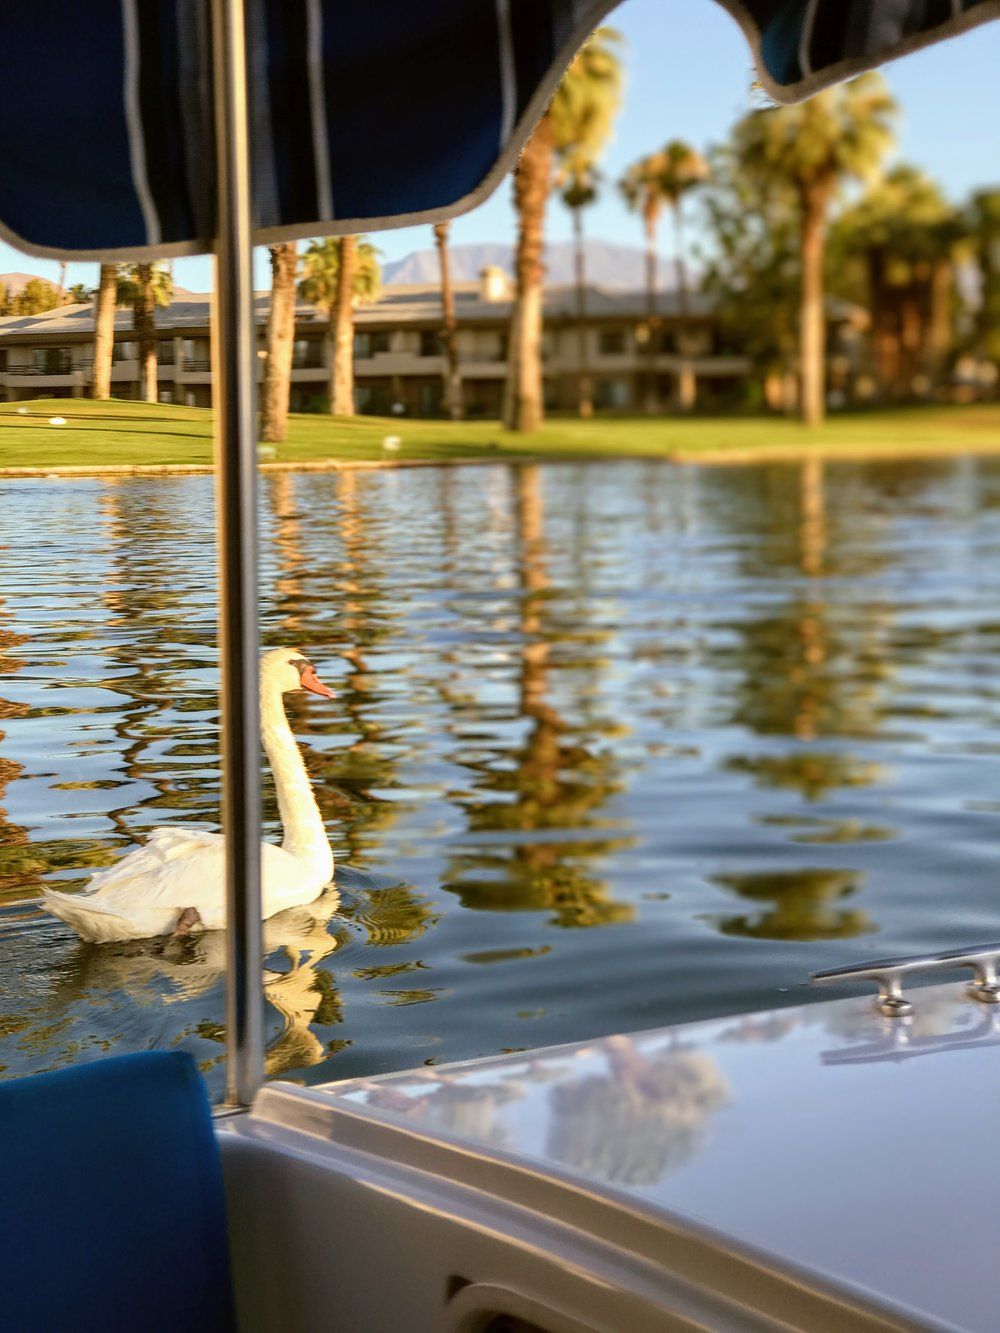 Swans on Boat Charter Ride